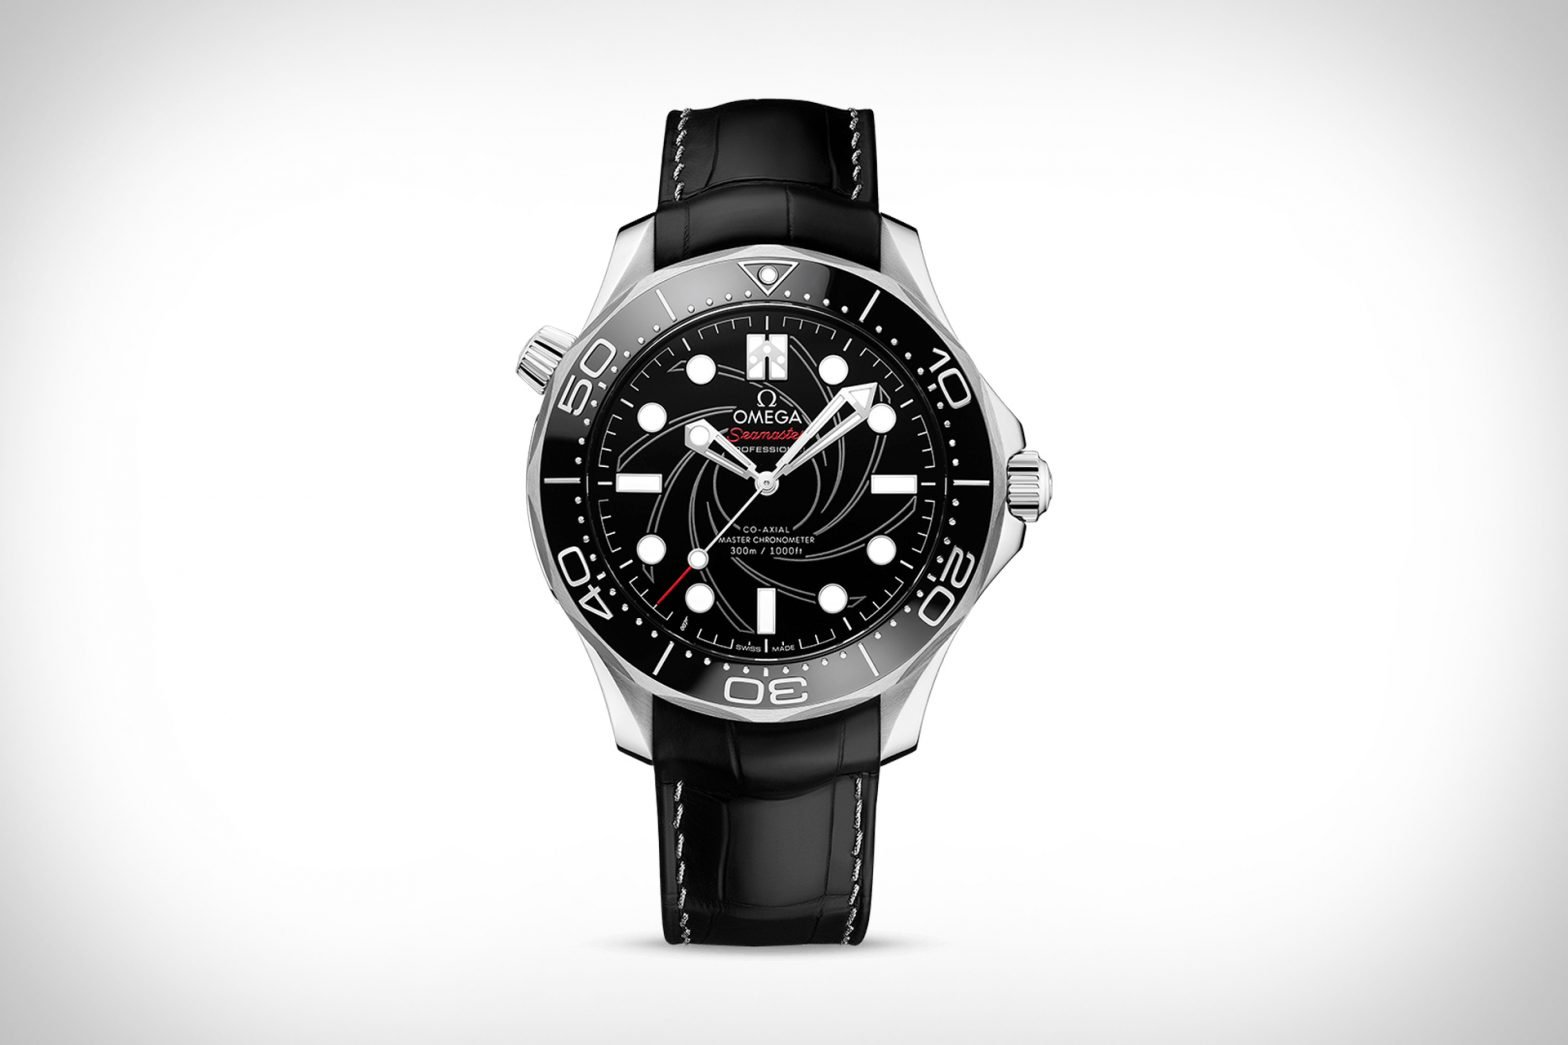 Omega Seamaster Diver 300M James Bond Numbered Edition Watch